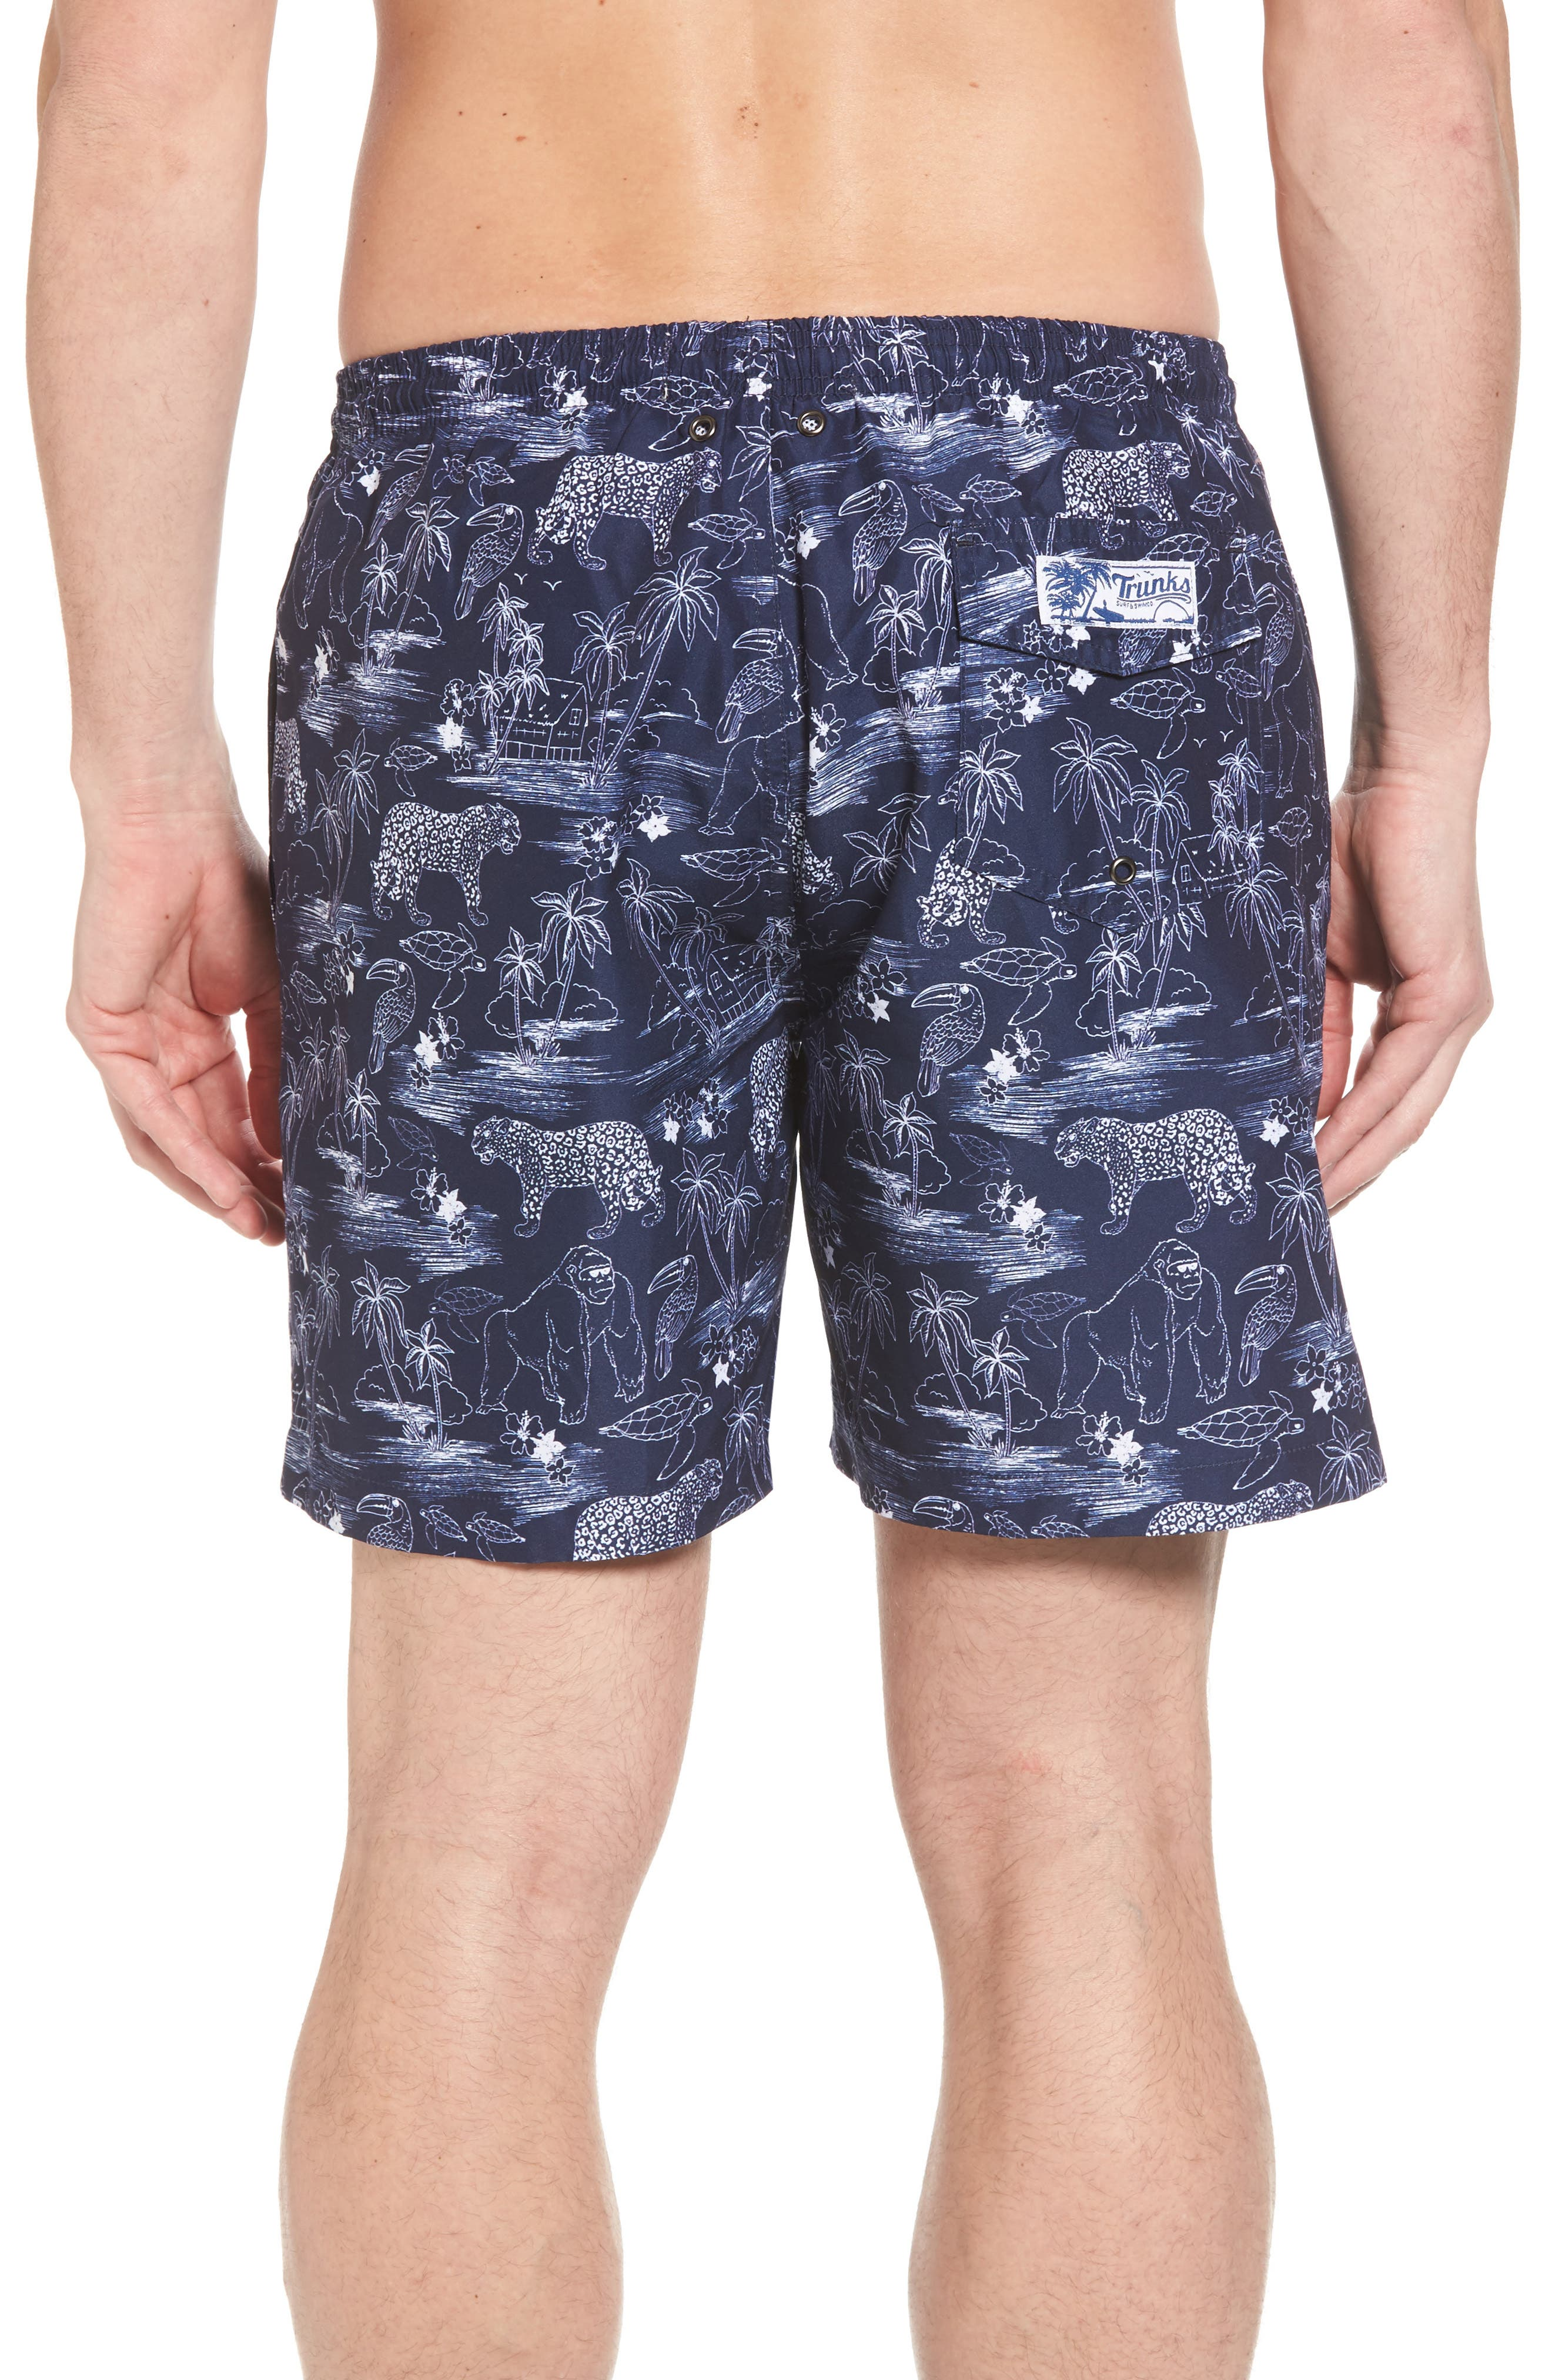 Trunks Surf & Co. San O Jungle Safari Swim Trunks,                             Alternate thumbnail 2, color,                             100